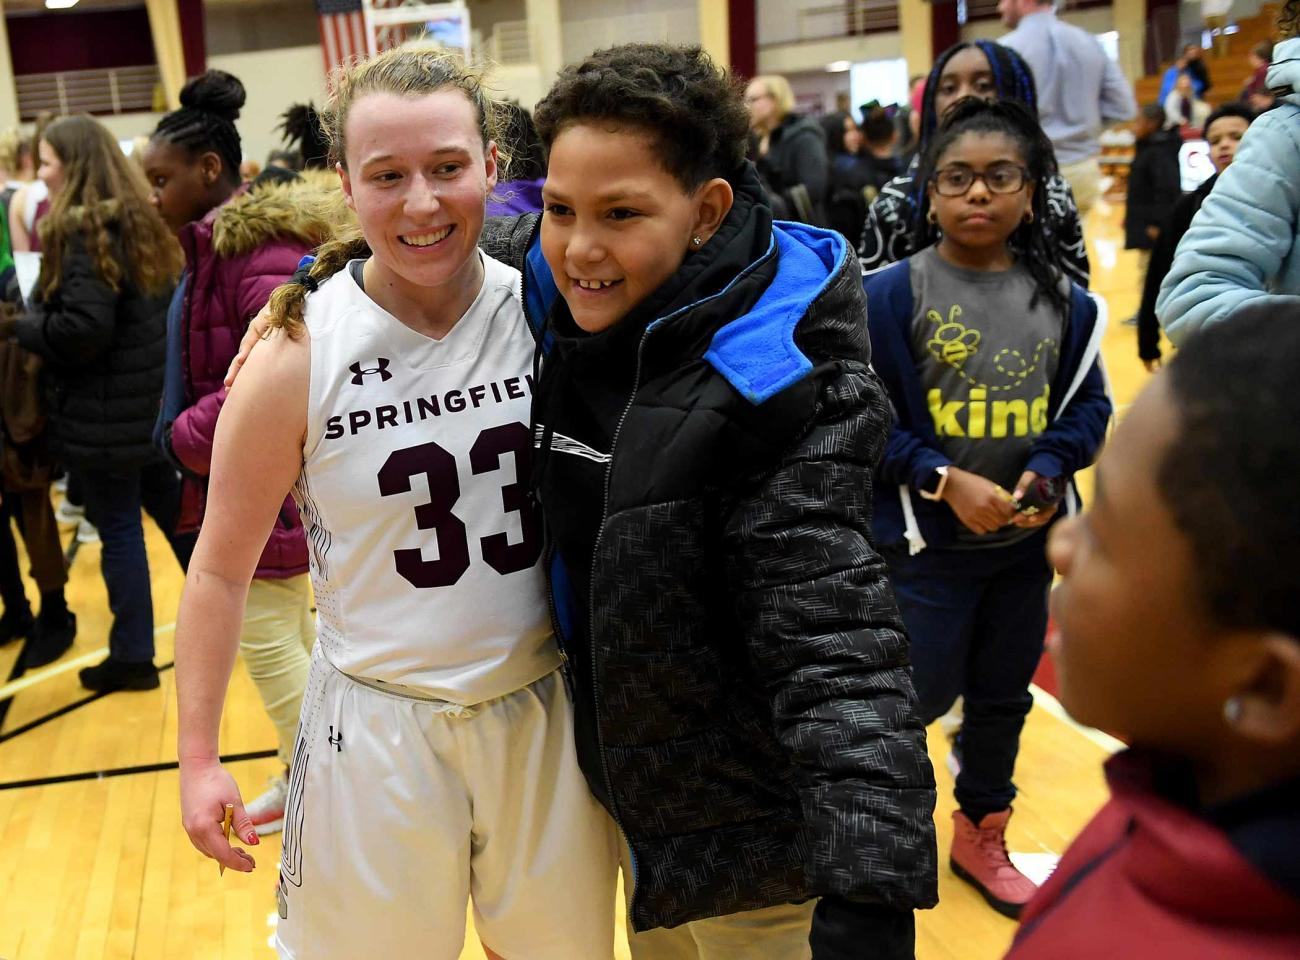 The Springfield College Division of Inclusion and Community Engagement, along with Springfield College Athletics, welcomed more than 250 students from Elias Brookings, William N. DeBerry, and Walsh Elementary Schools on Tuesday, Jan. 7 at Blake Arena when the Pride hosted Smith College.